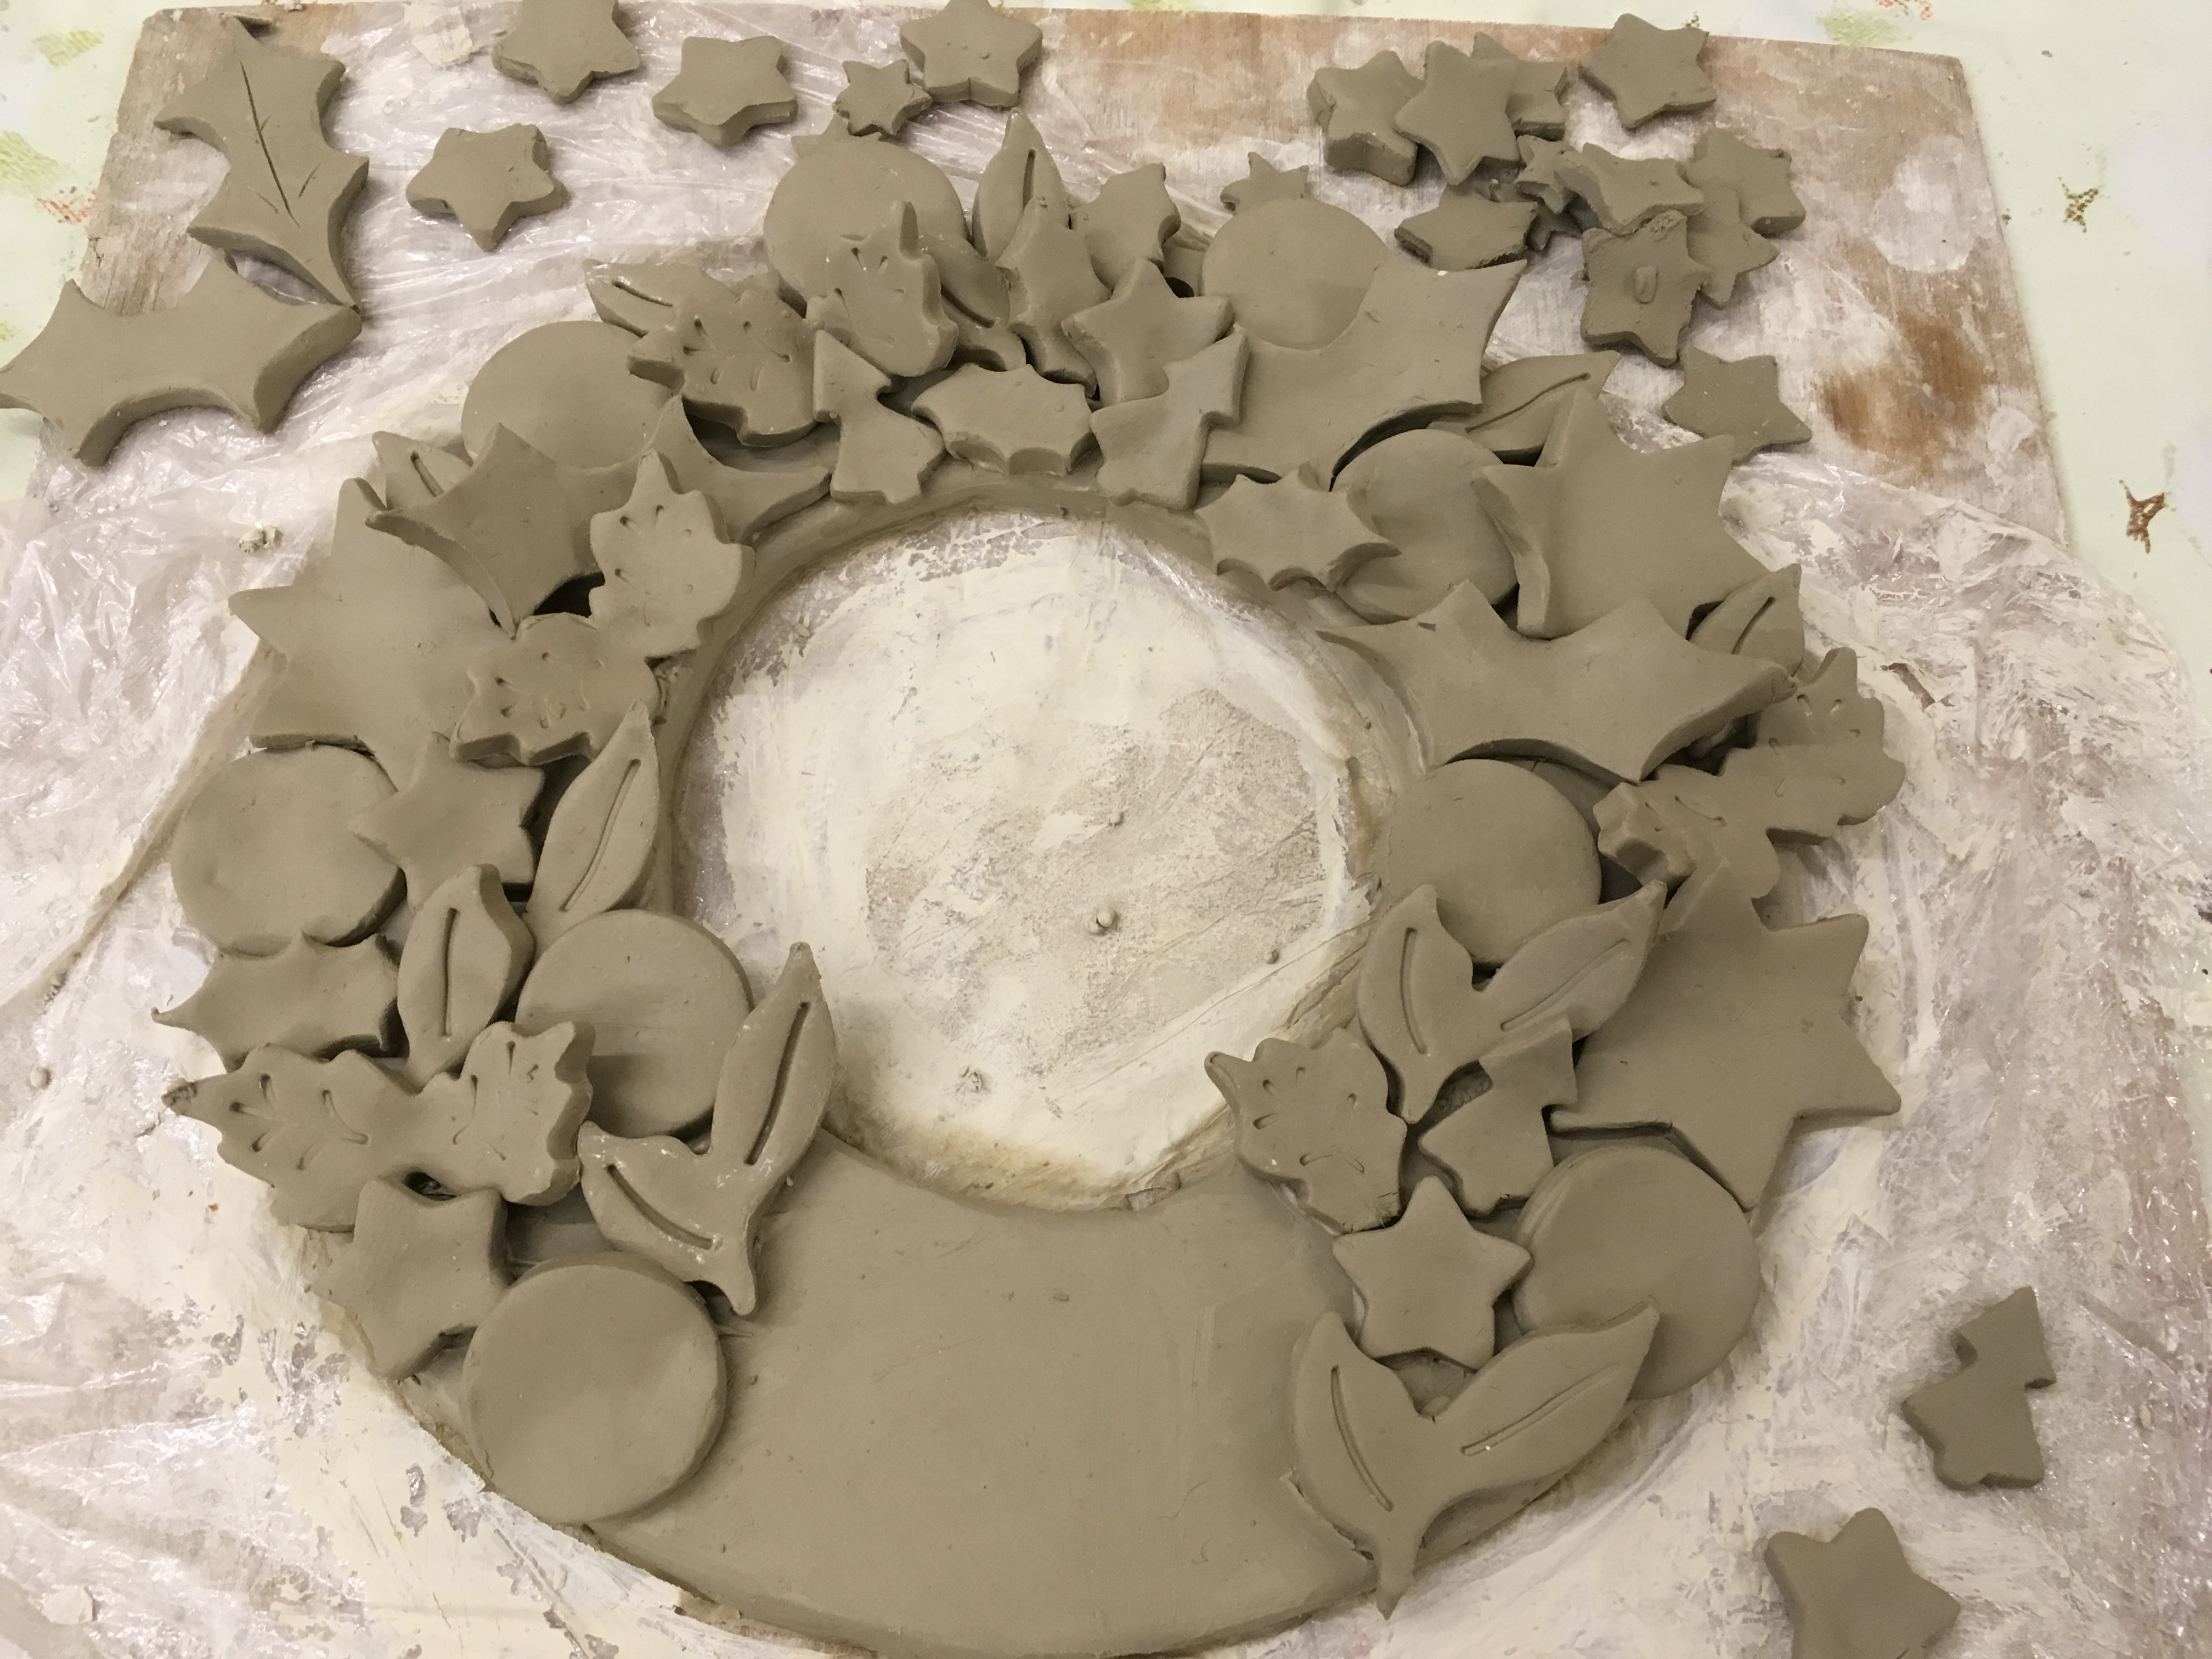 Clay work making a ceramic Christmas wreath